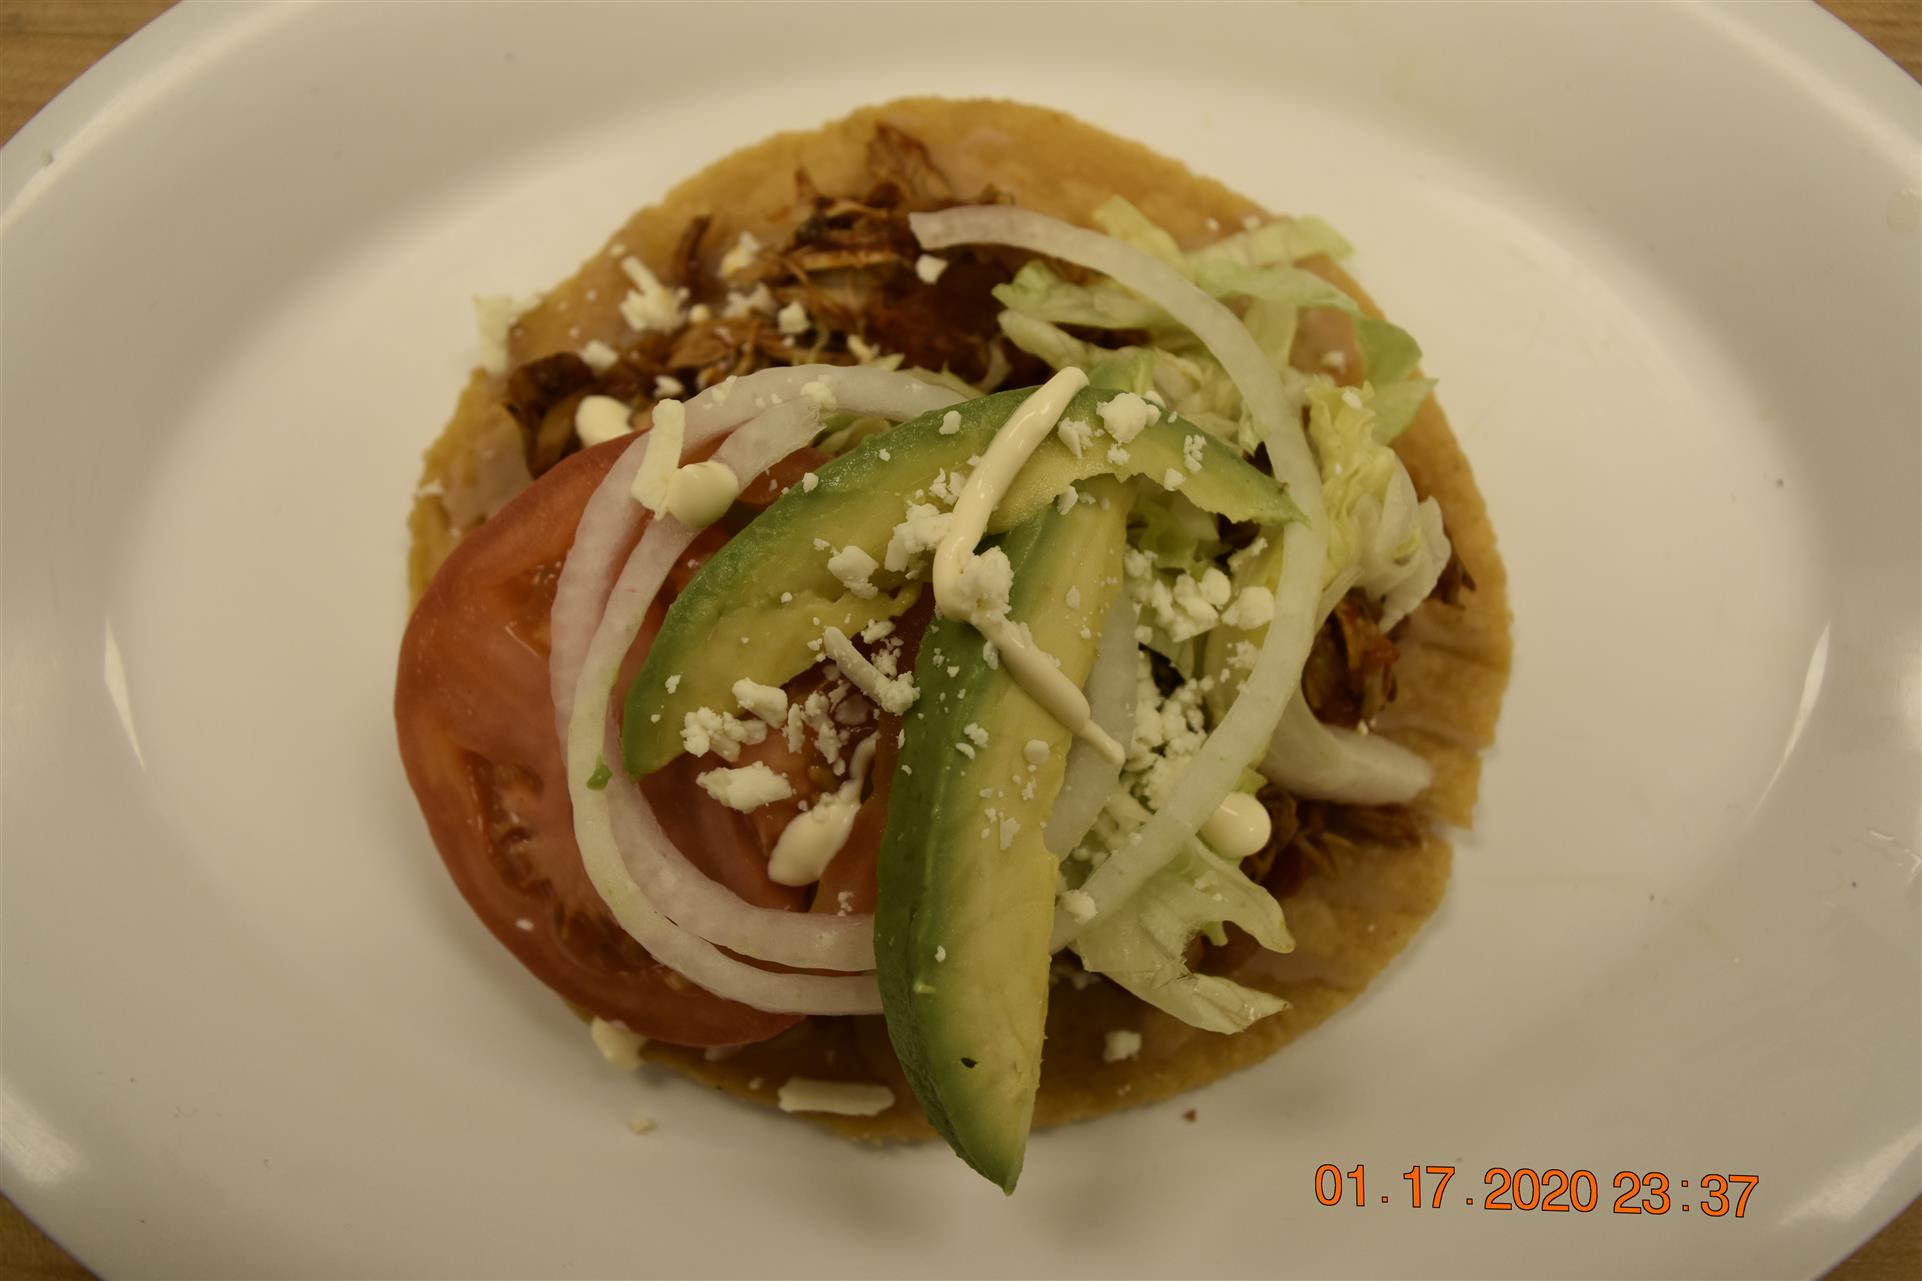 tortilla with meat, tomato, onion and avocado